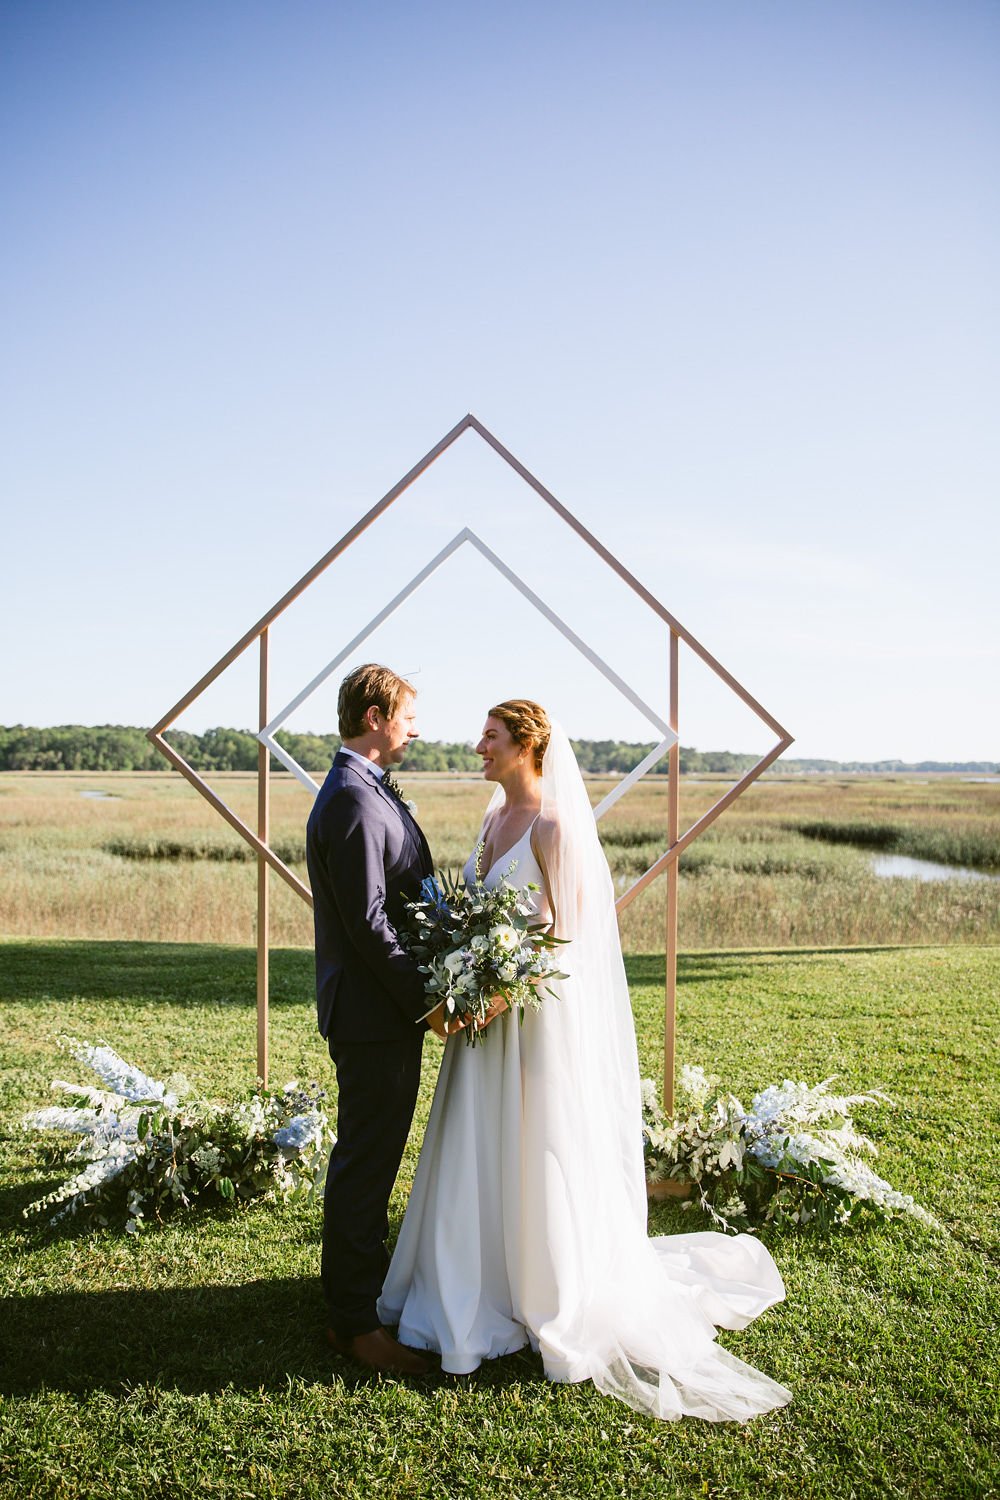 Edisto Island Wedding at Cypress Trees Plantation - Charleston Destination Luxury Wedding Planner - Scarlet Plan & Design, geometric ceremony backdrop